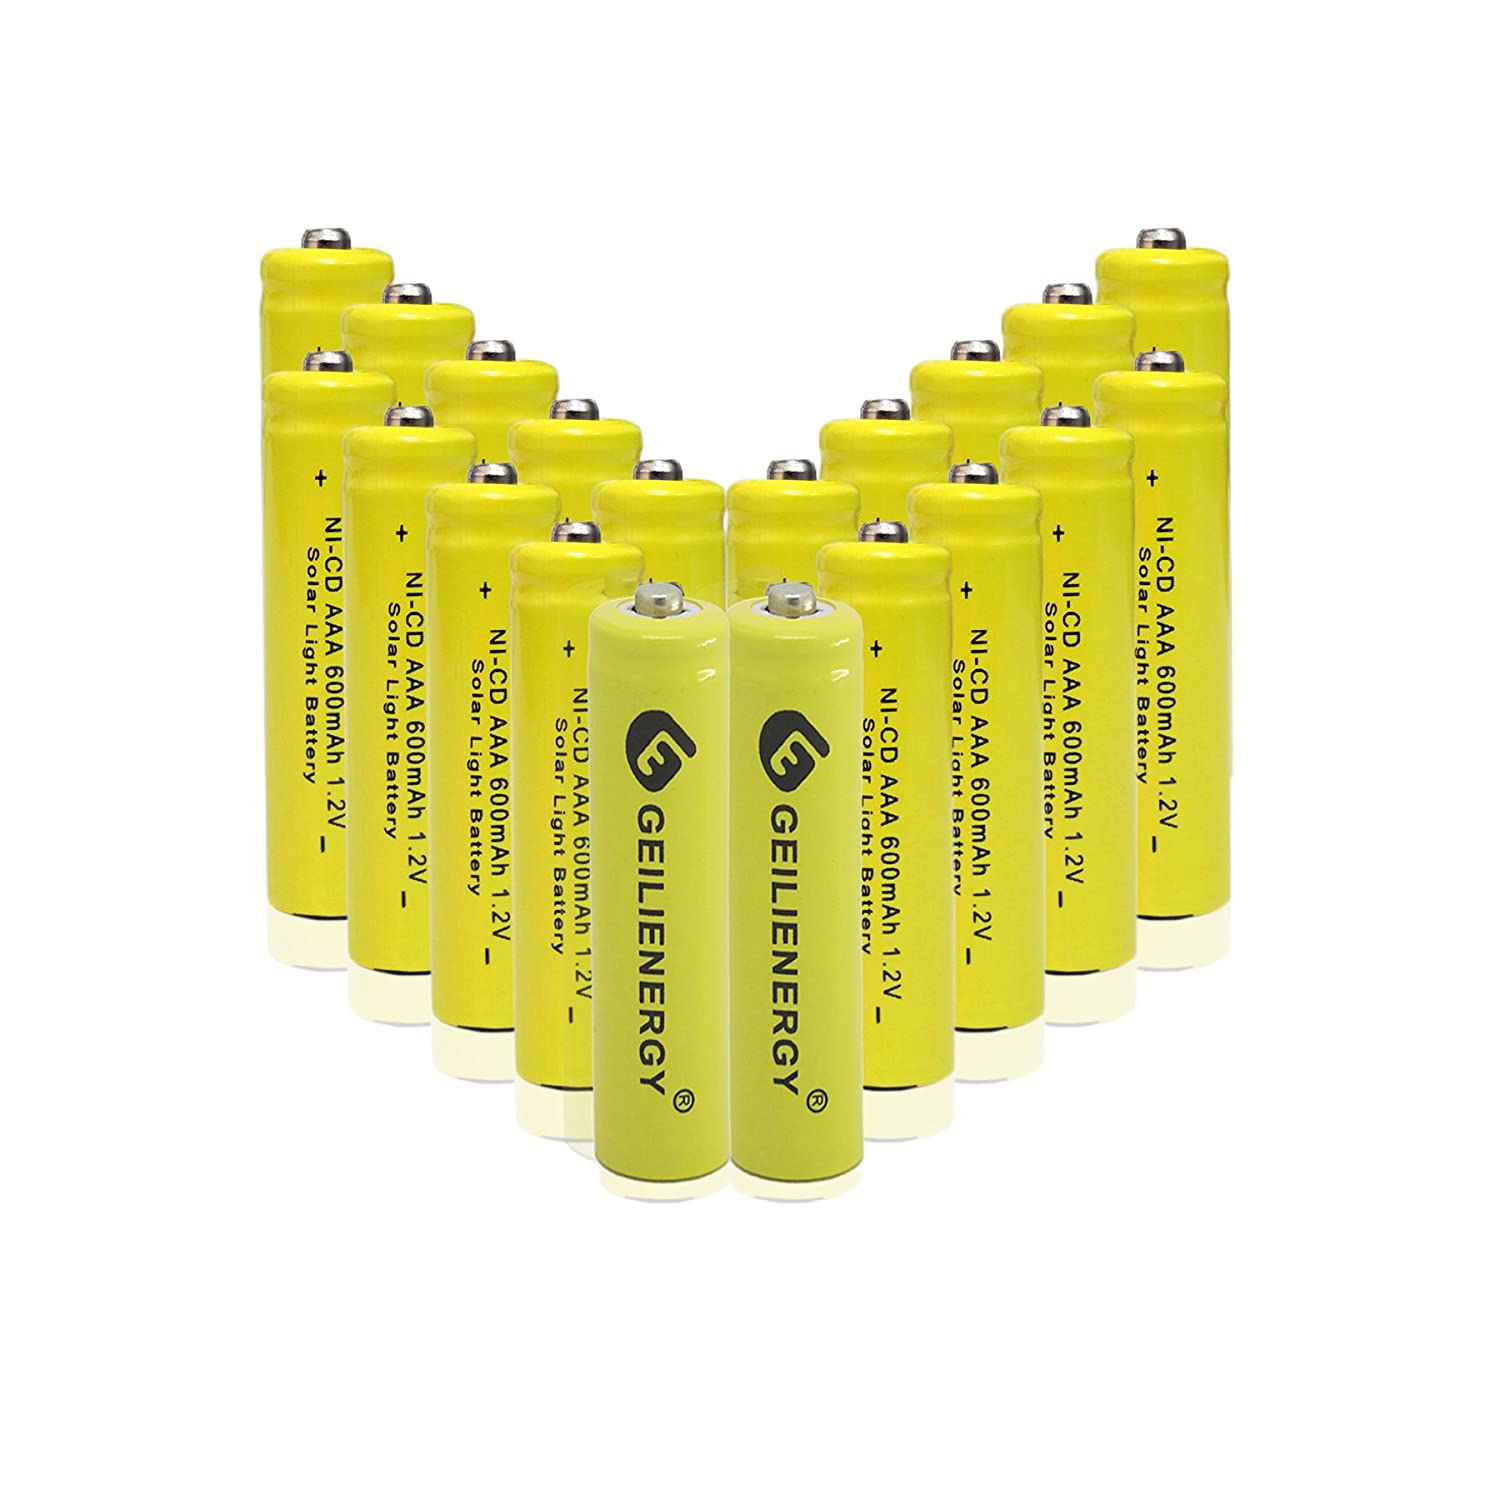 Amazon.com: GEILIENERGY NiCd AAA 1.2V 600mAh Triple A Rechargeable Batteries  for Solar light Lamp Yellow Color (Pack of 20): Home Audio & Theater